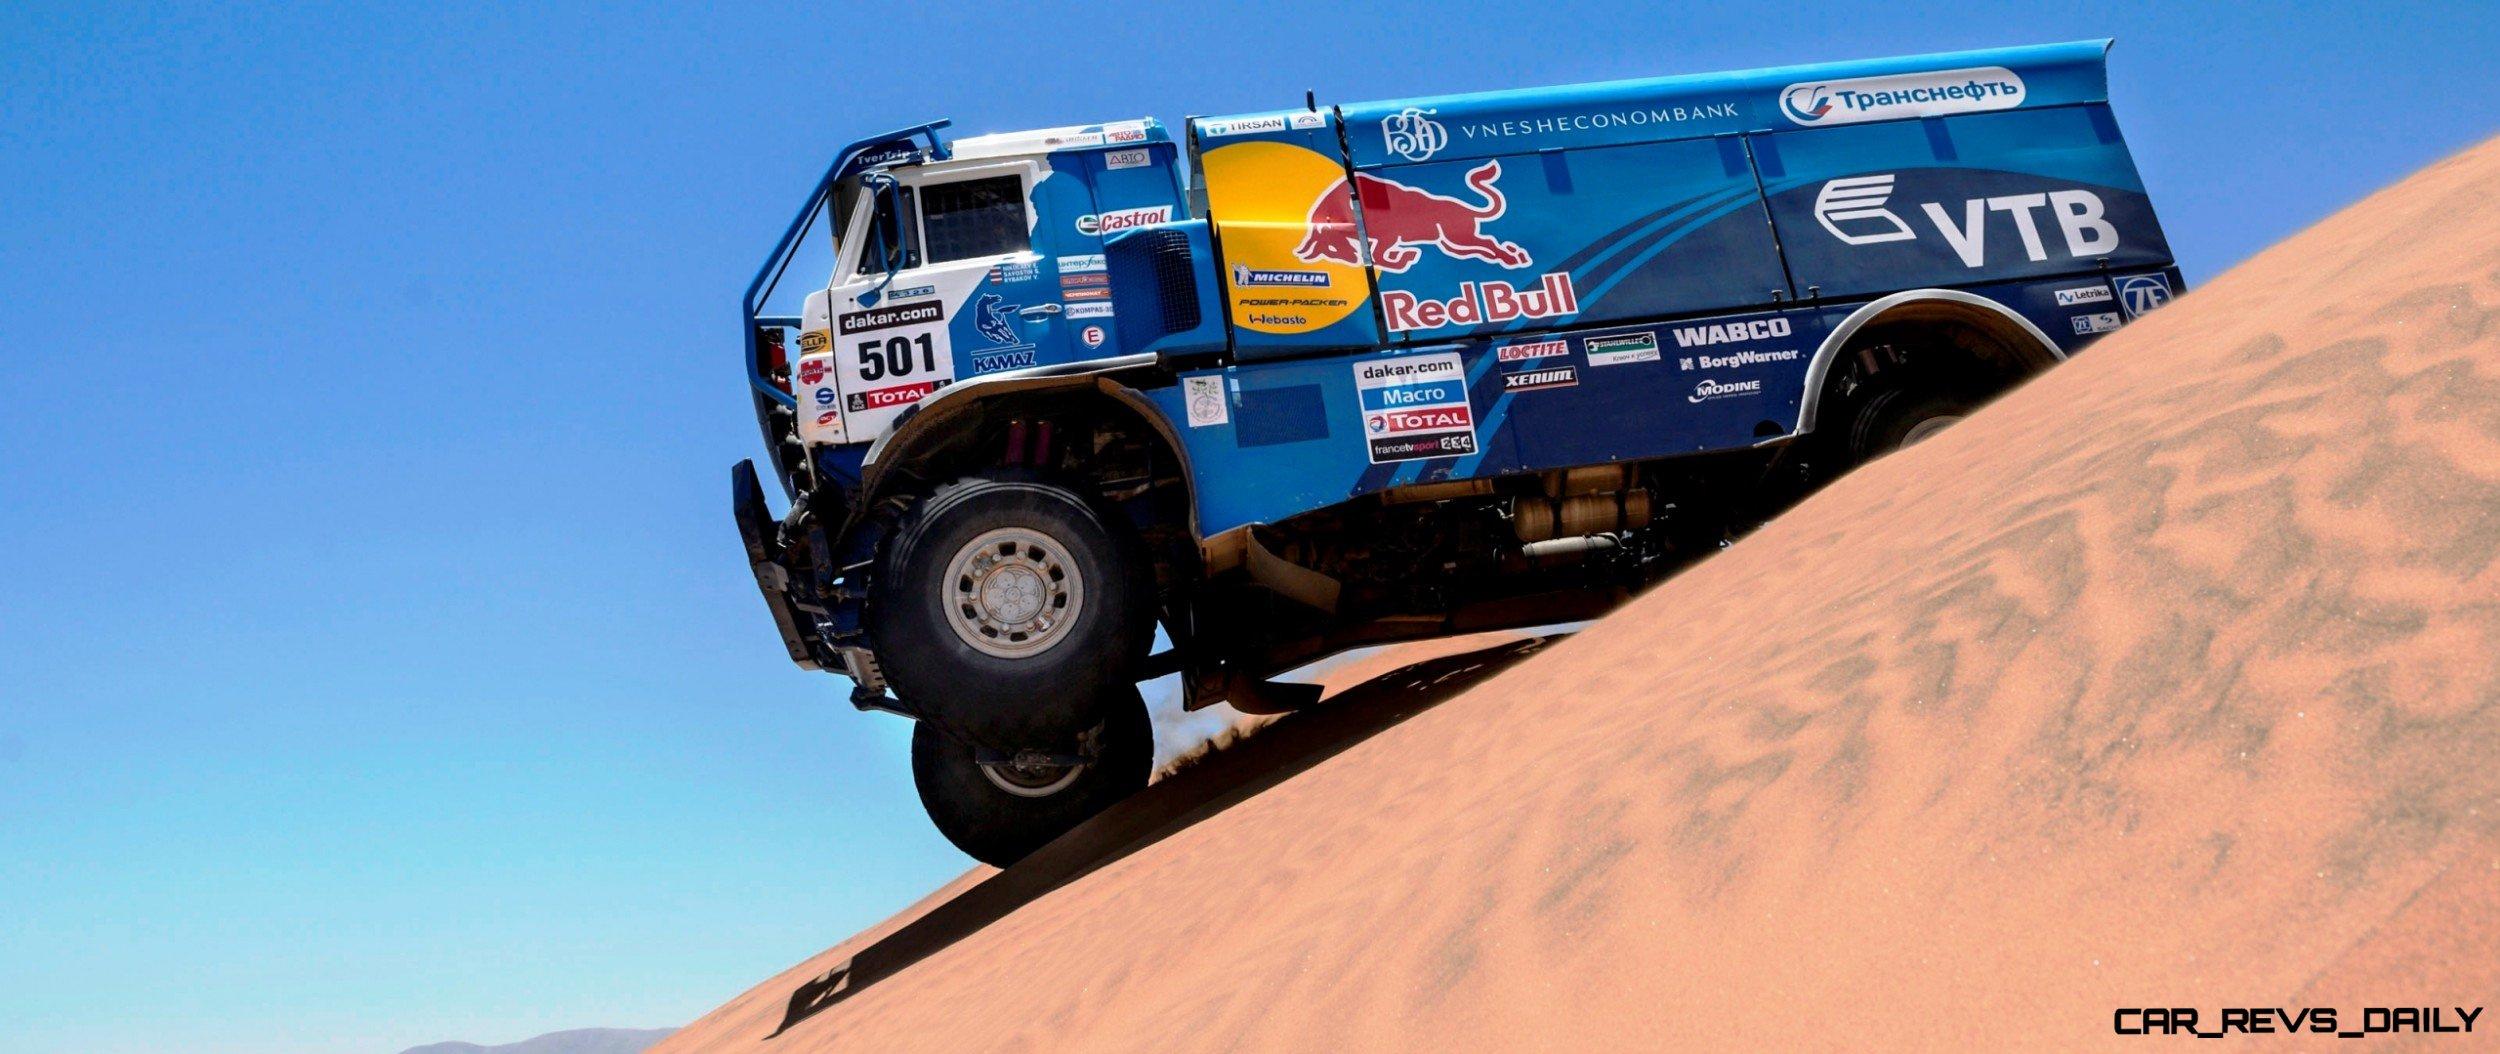 Eduard Nikolaev (driver) Sergey Savostin (co-driver) and Vladimir Rybakov (co-driver) race during the 13th stage of Dakar Rally from Copiapo to La Serena, Chile on January 18th, 2013